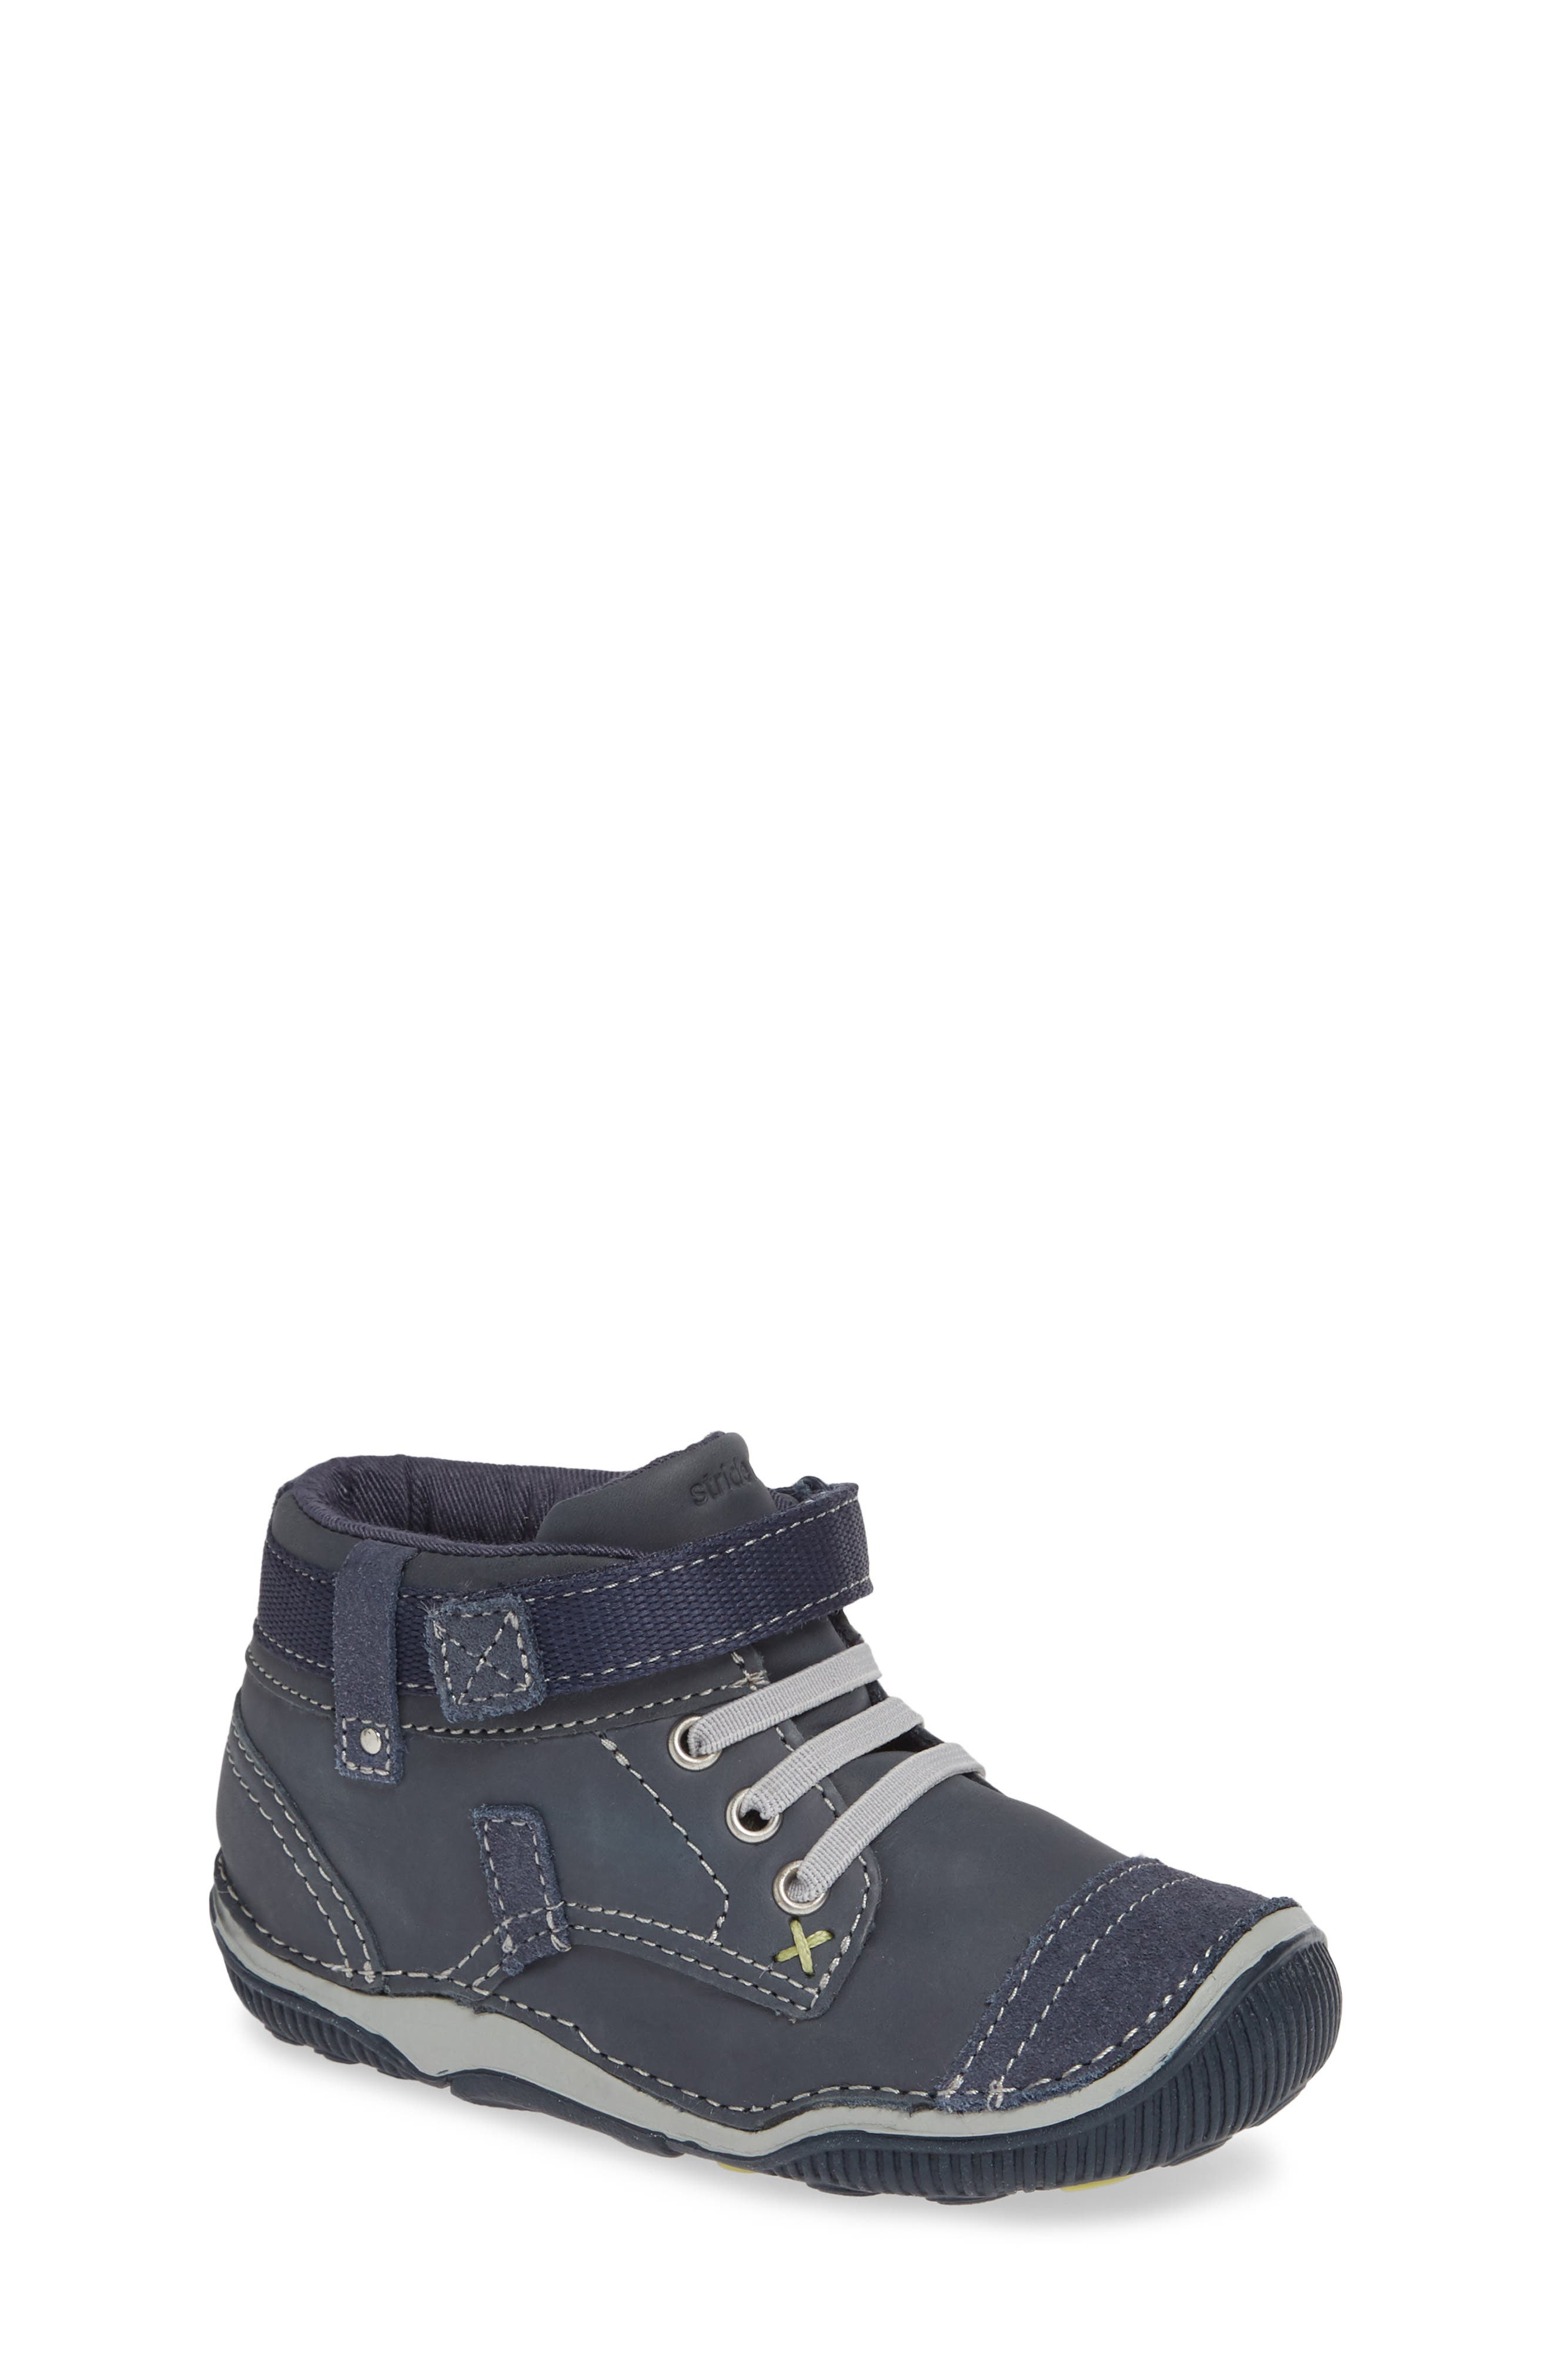 'Garrett' High Top Bootie Sneaker,                             Main thumbnail 1, color,                             NAVY